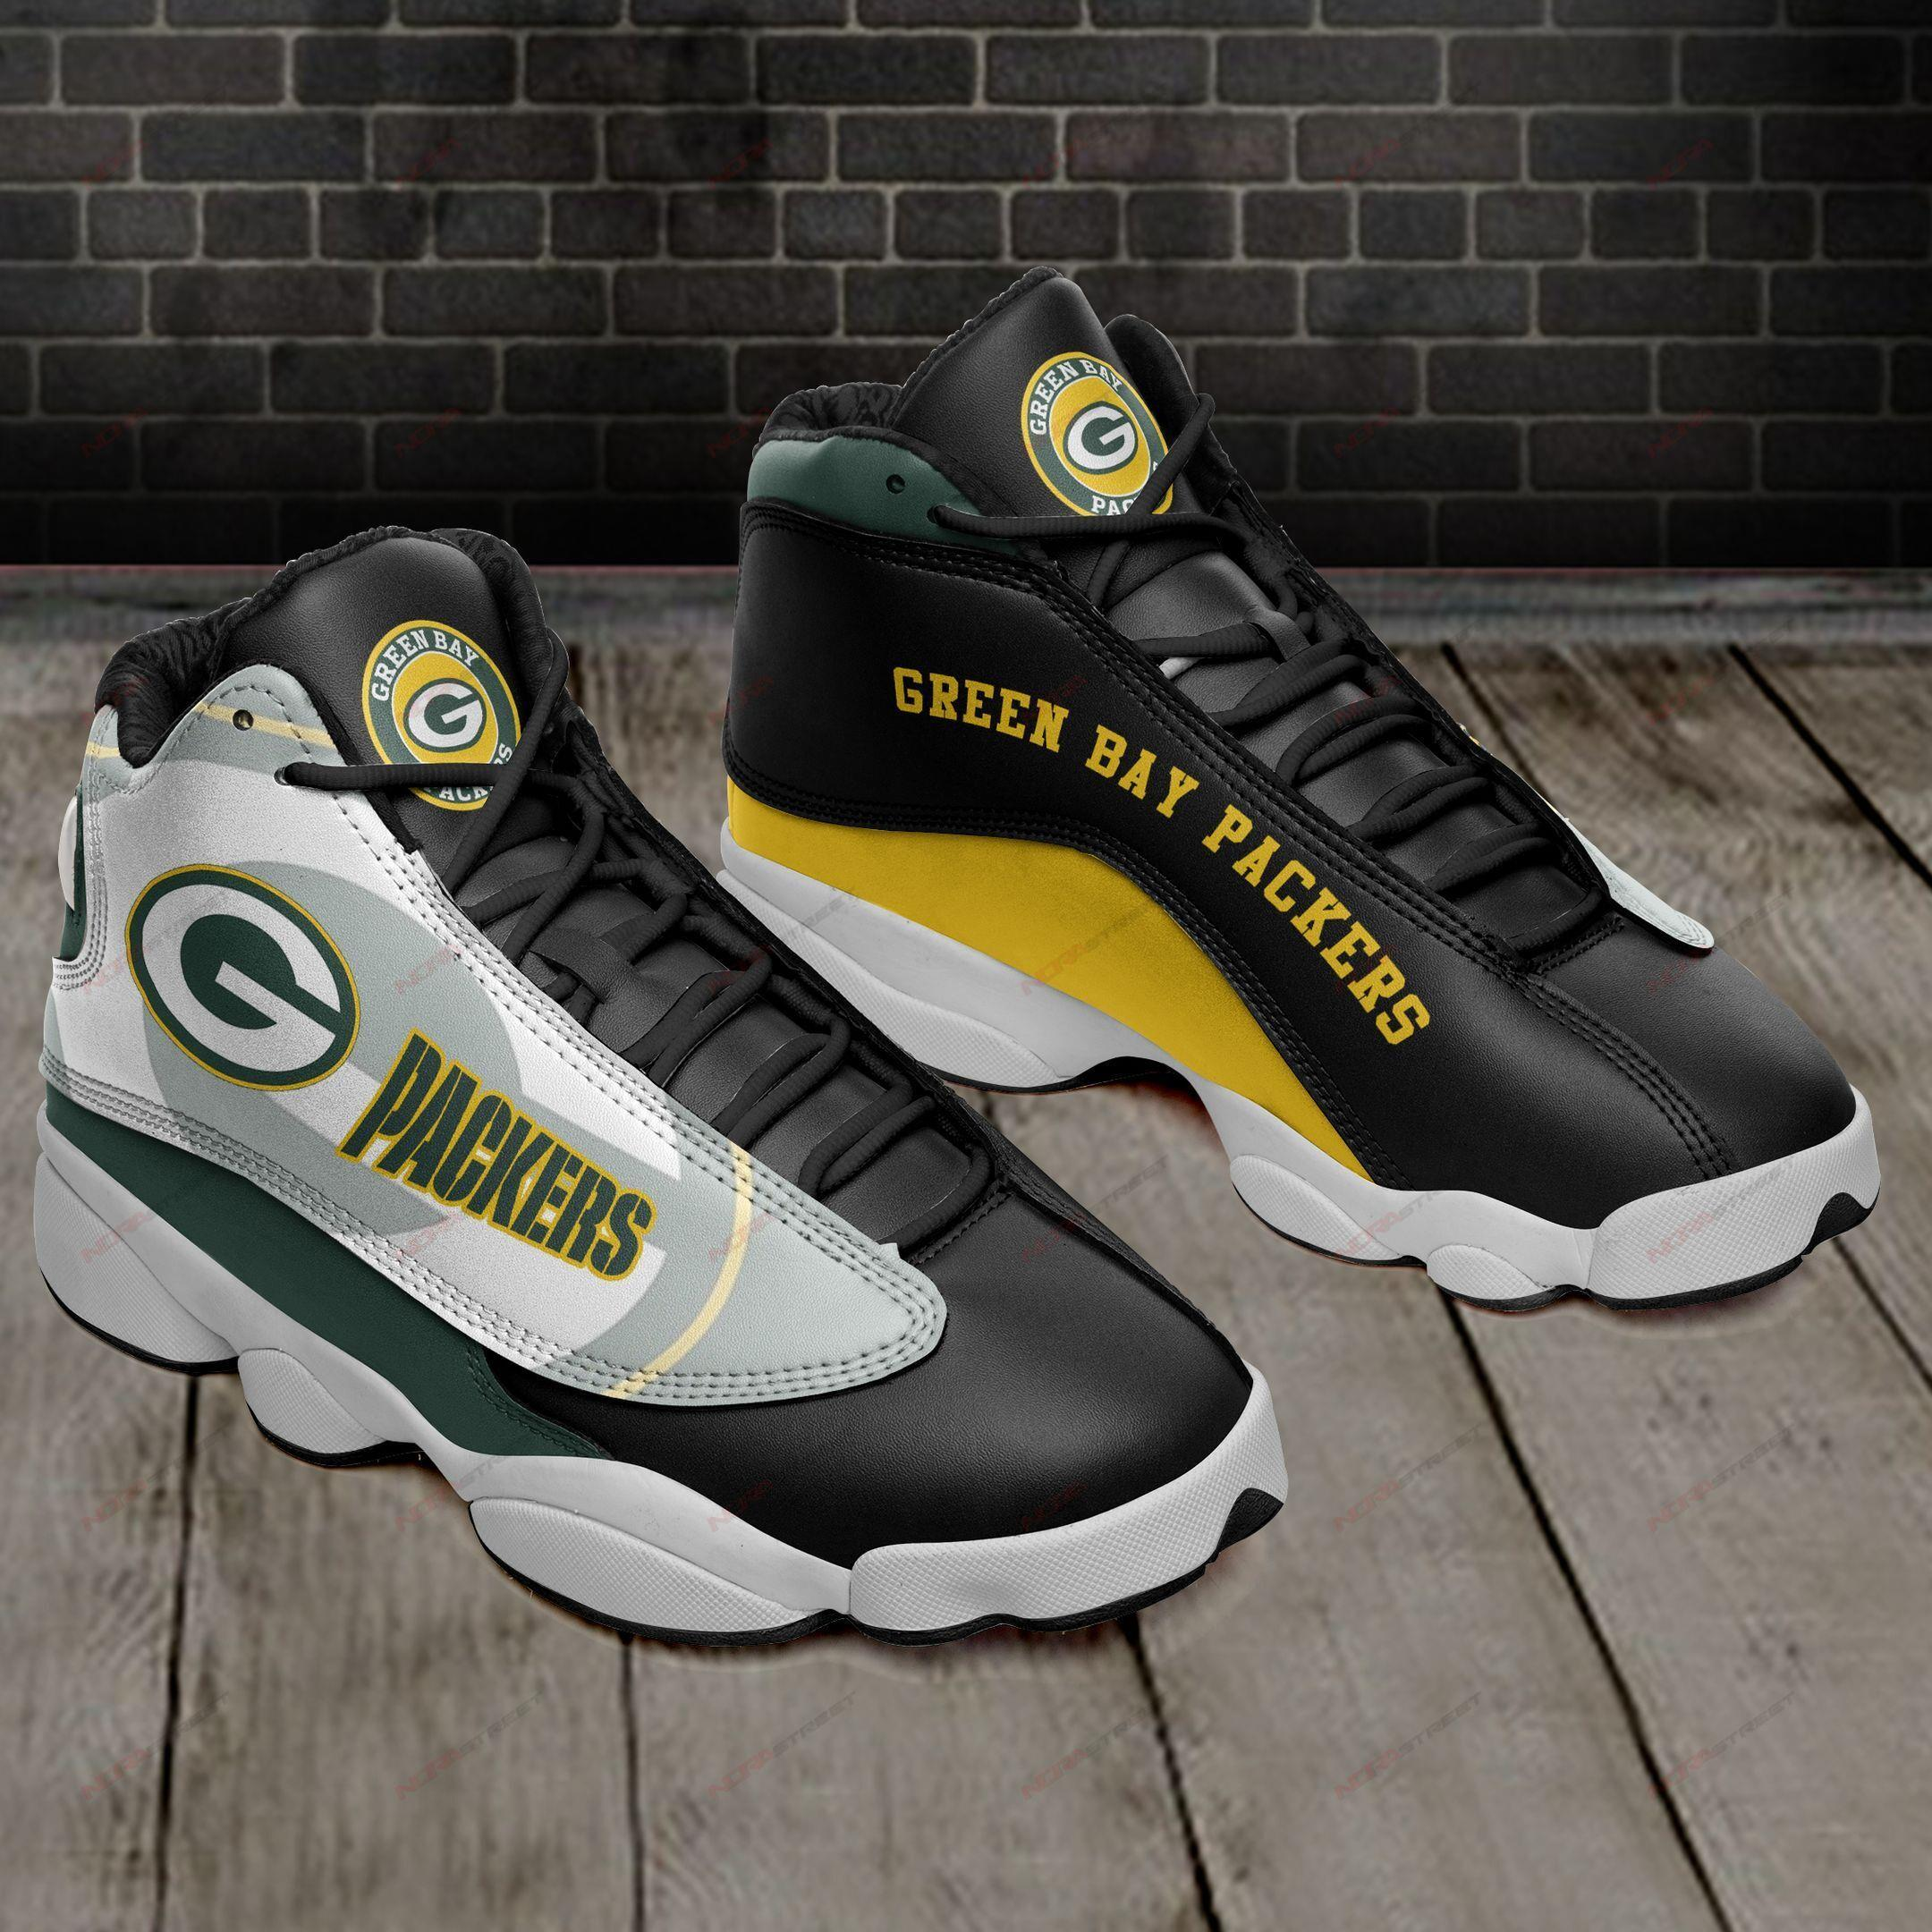 Green Bay Packers Air Jordan 13 Sneakers Sport Shoes